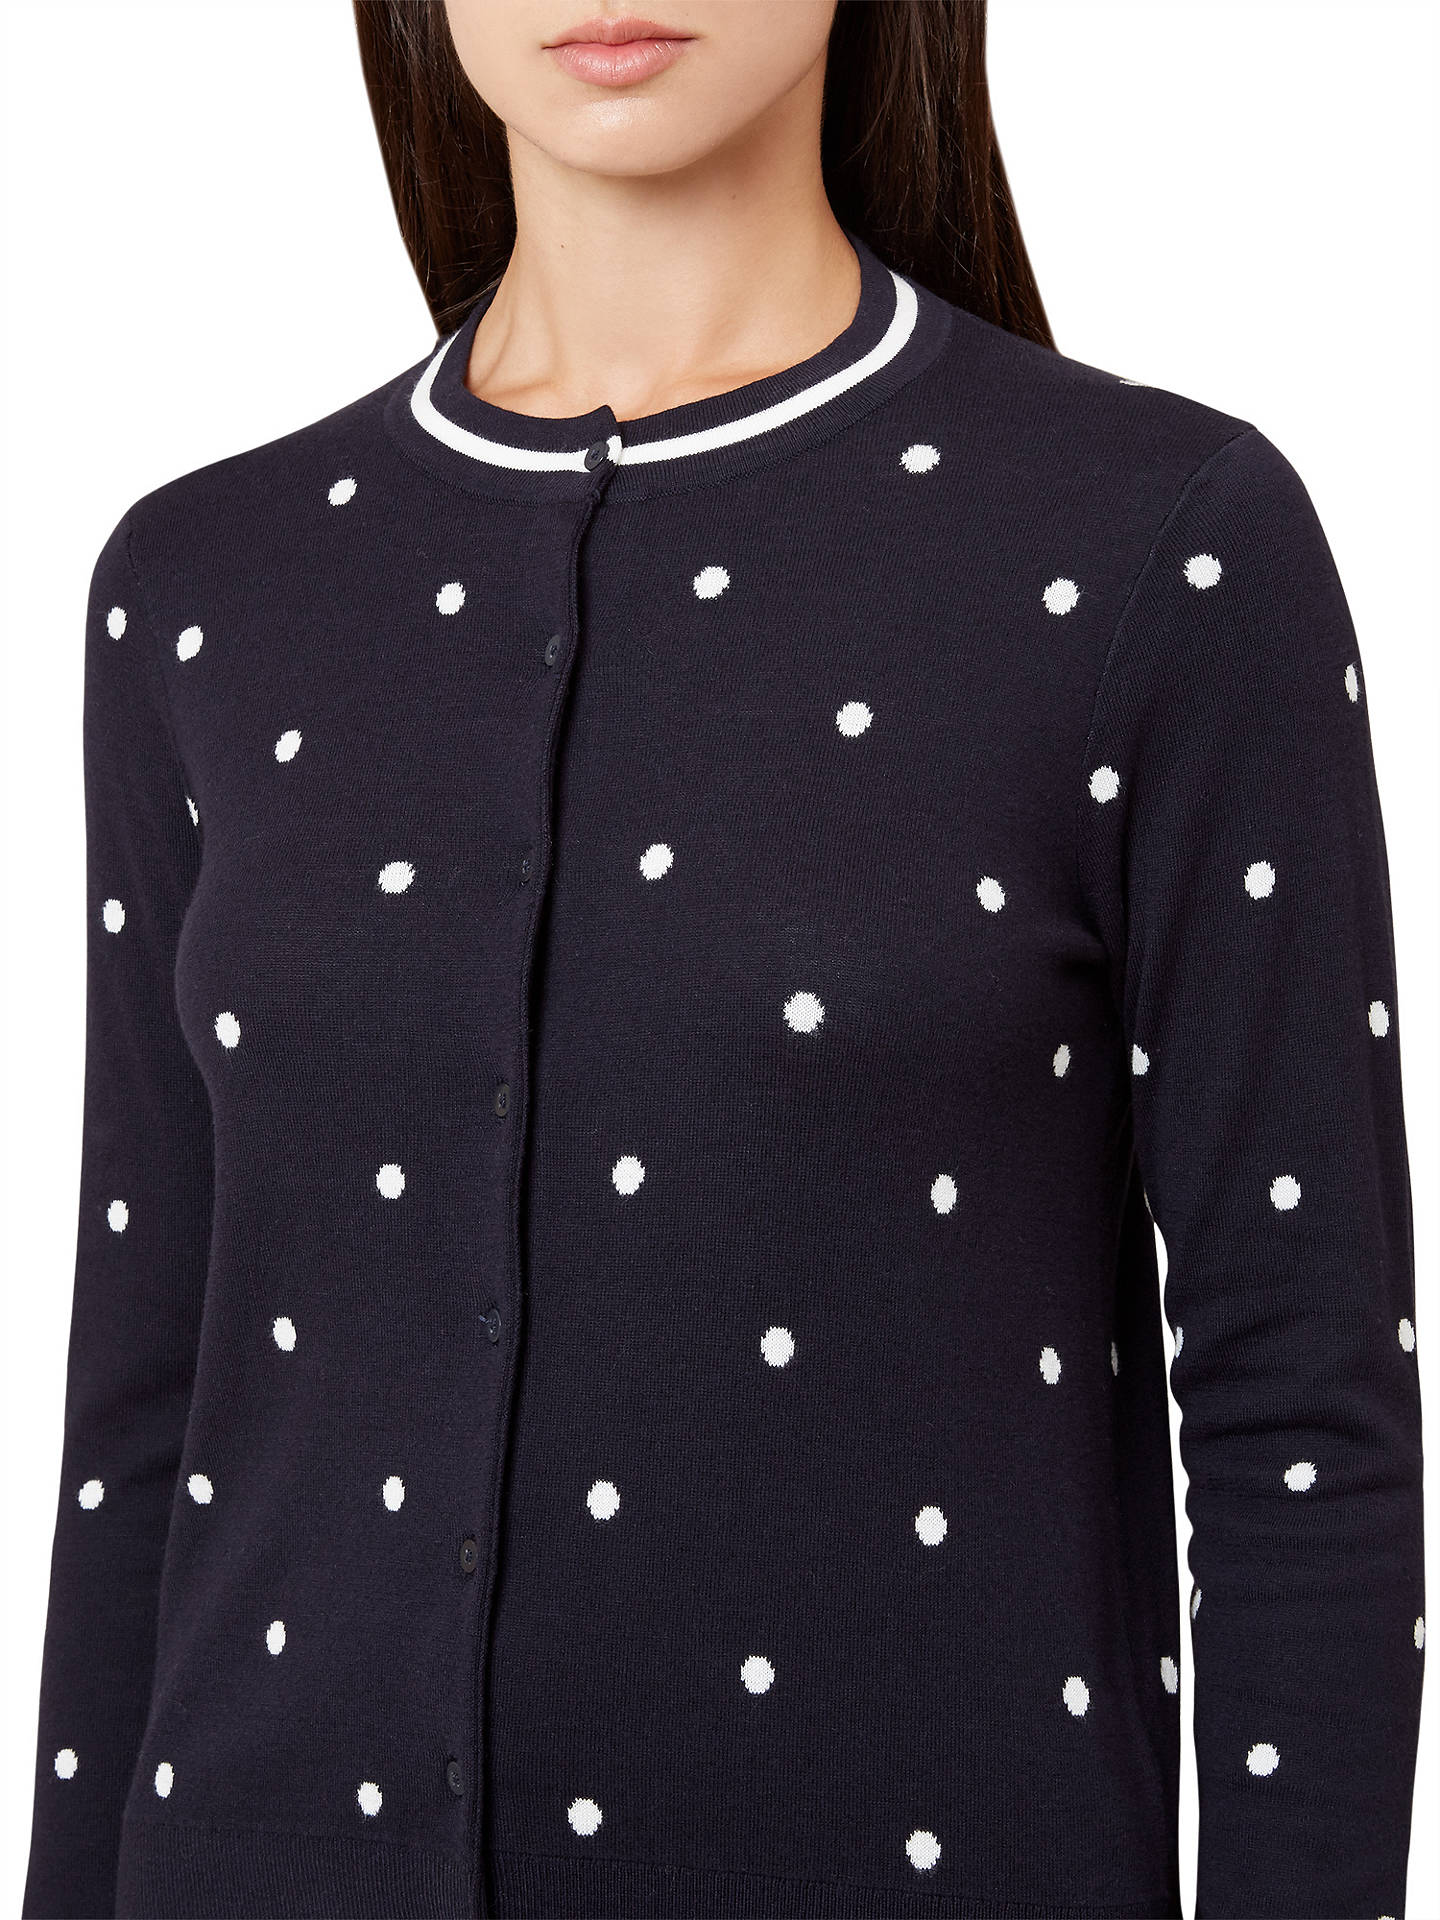 BuyHobbs Chantelle Cardigan, Navy/Ivory, S Online at johnlewis.com